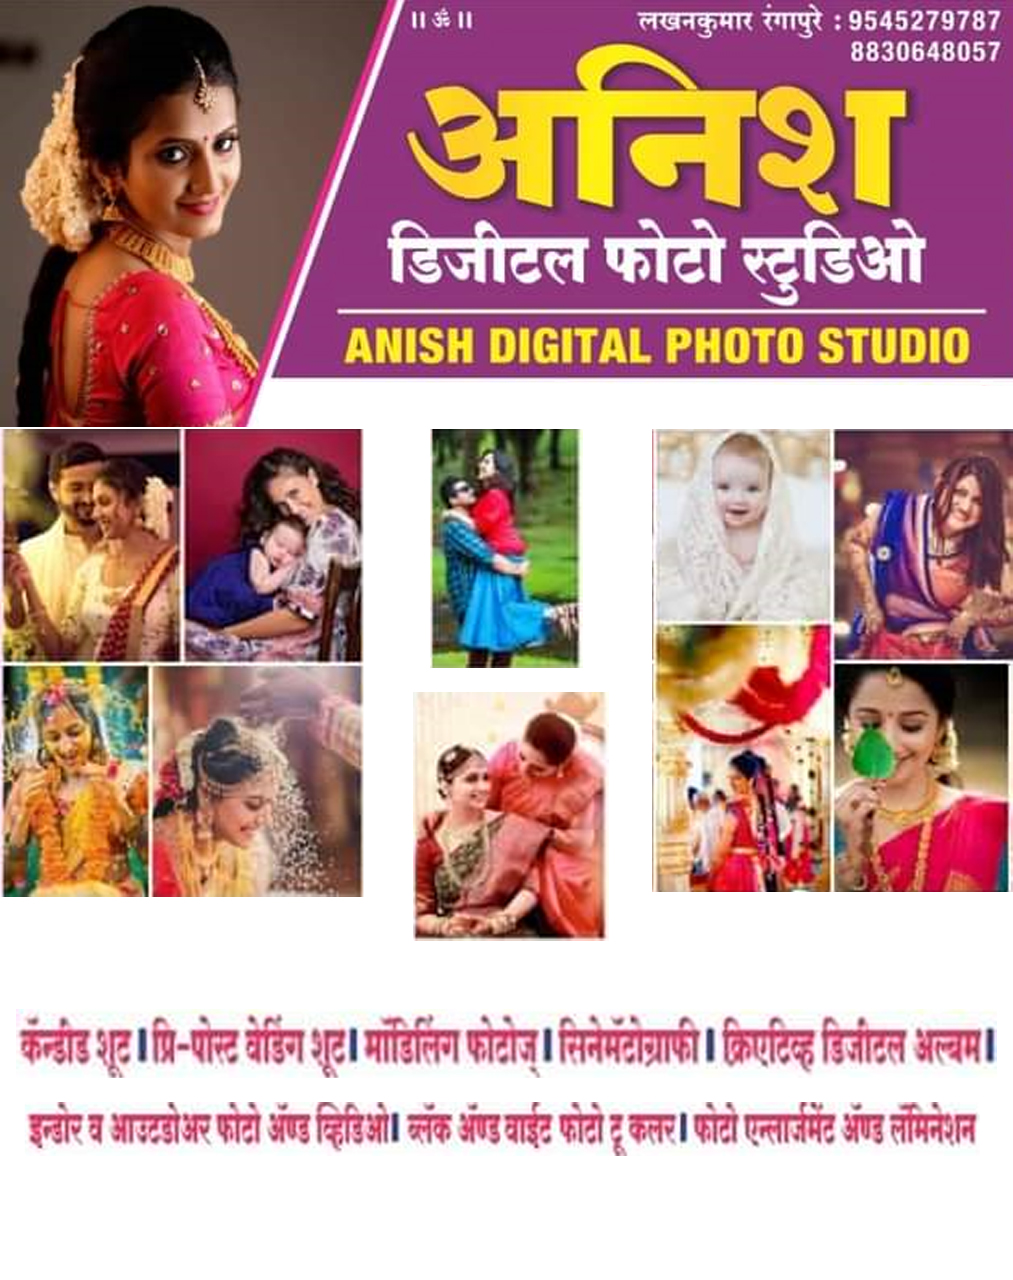 ANISH DIGITAL PHOTO STUDIO